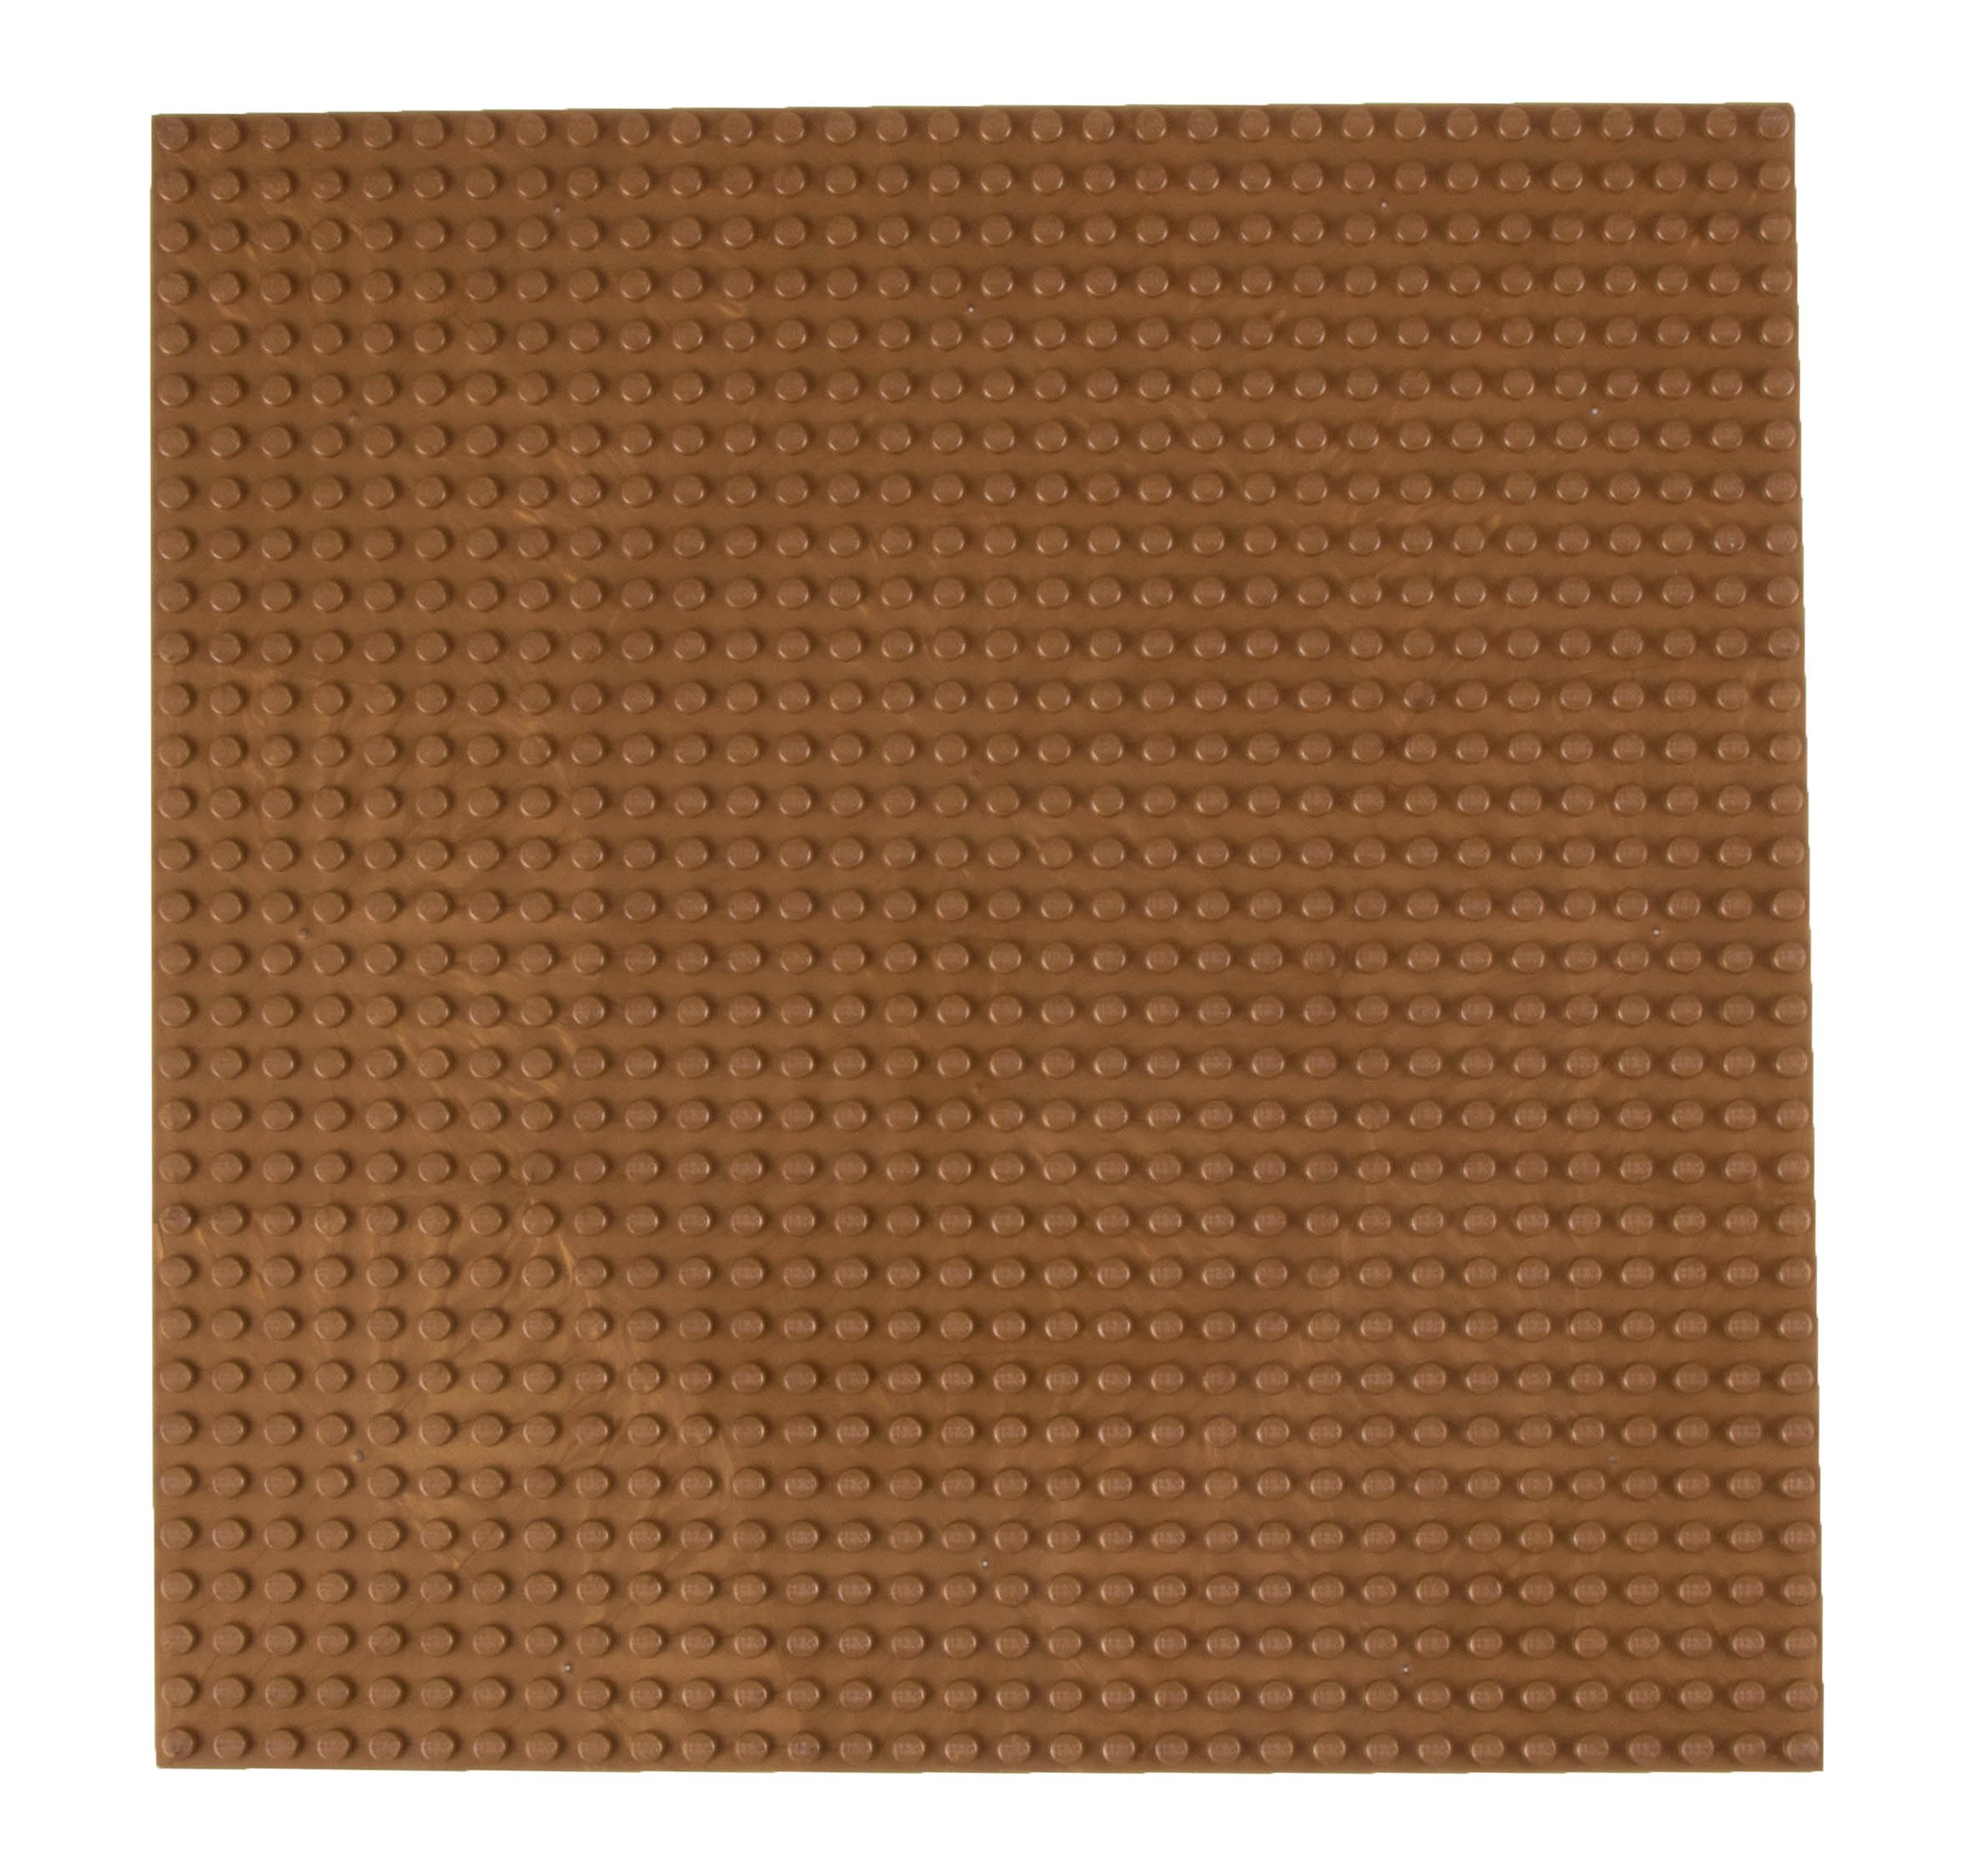 """Strictly Briks Classic Baseplates 10"""" x 10"""" Stackable Brick Base Plate 100% Compatible with All Major Brands   Baseplate for Building Towers, Tables & More   1 Copper Baseplate"""